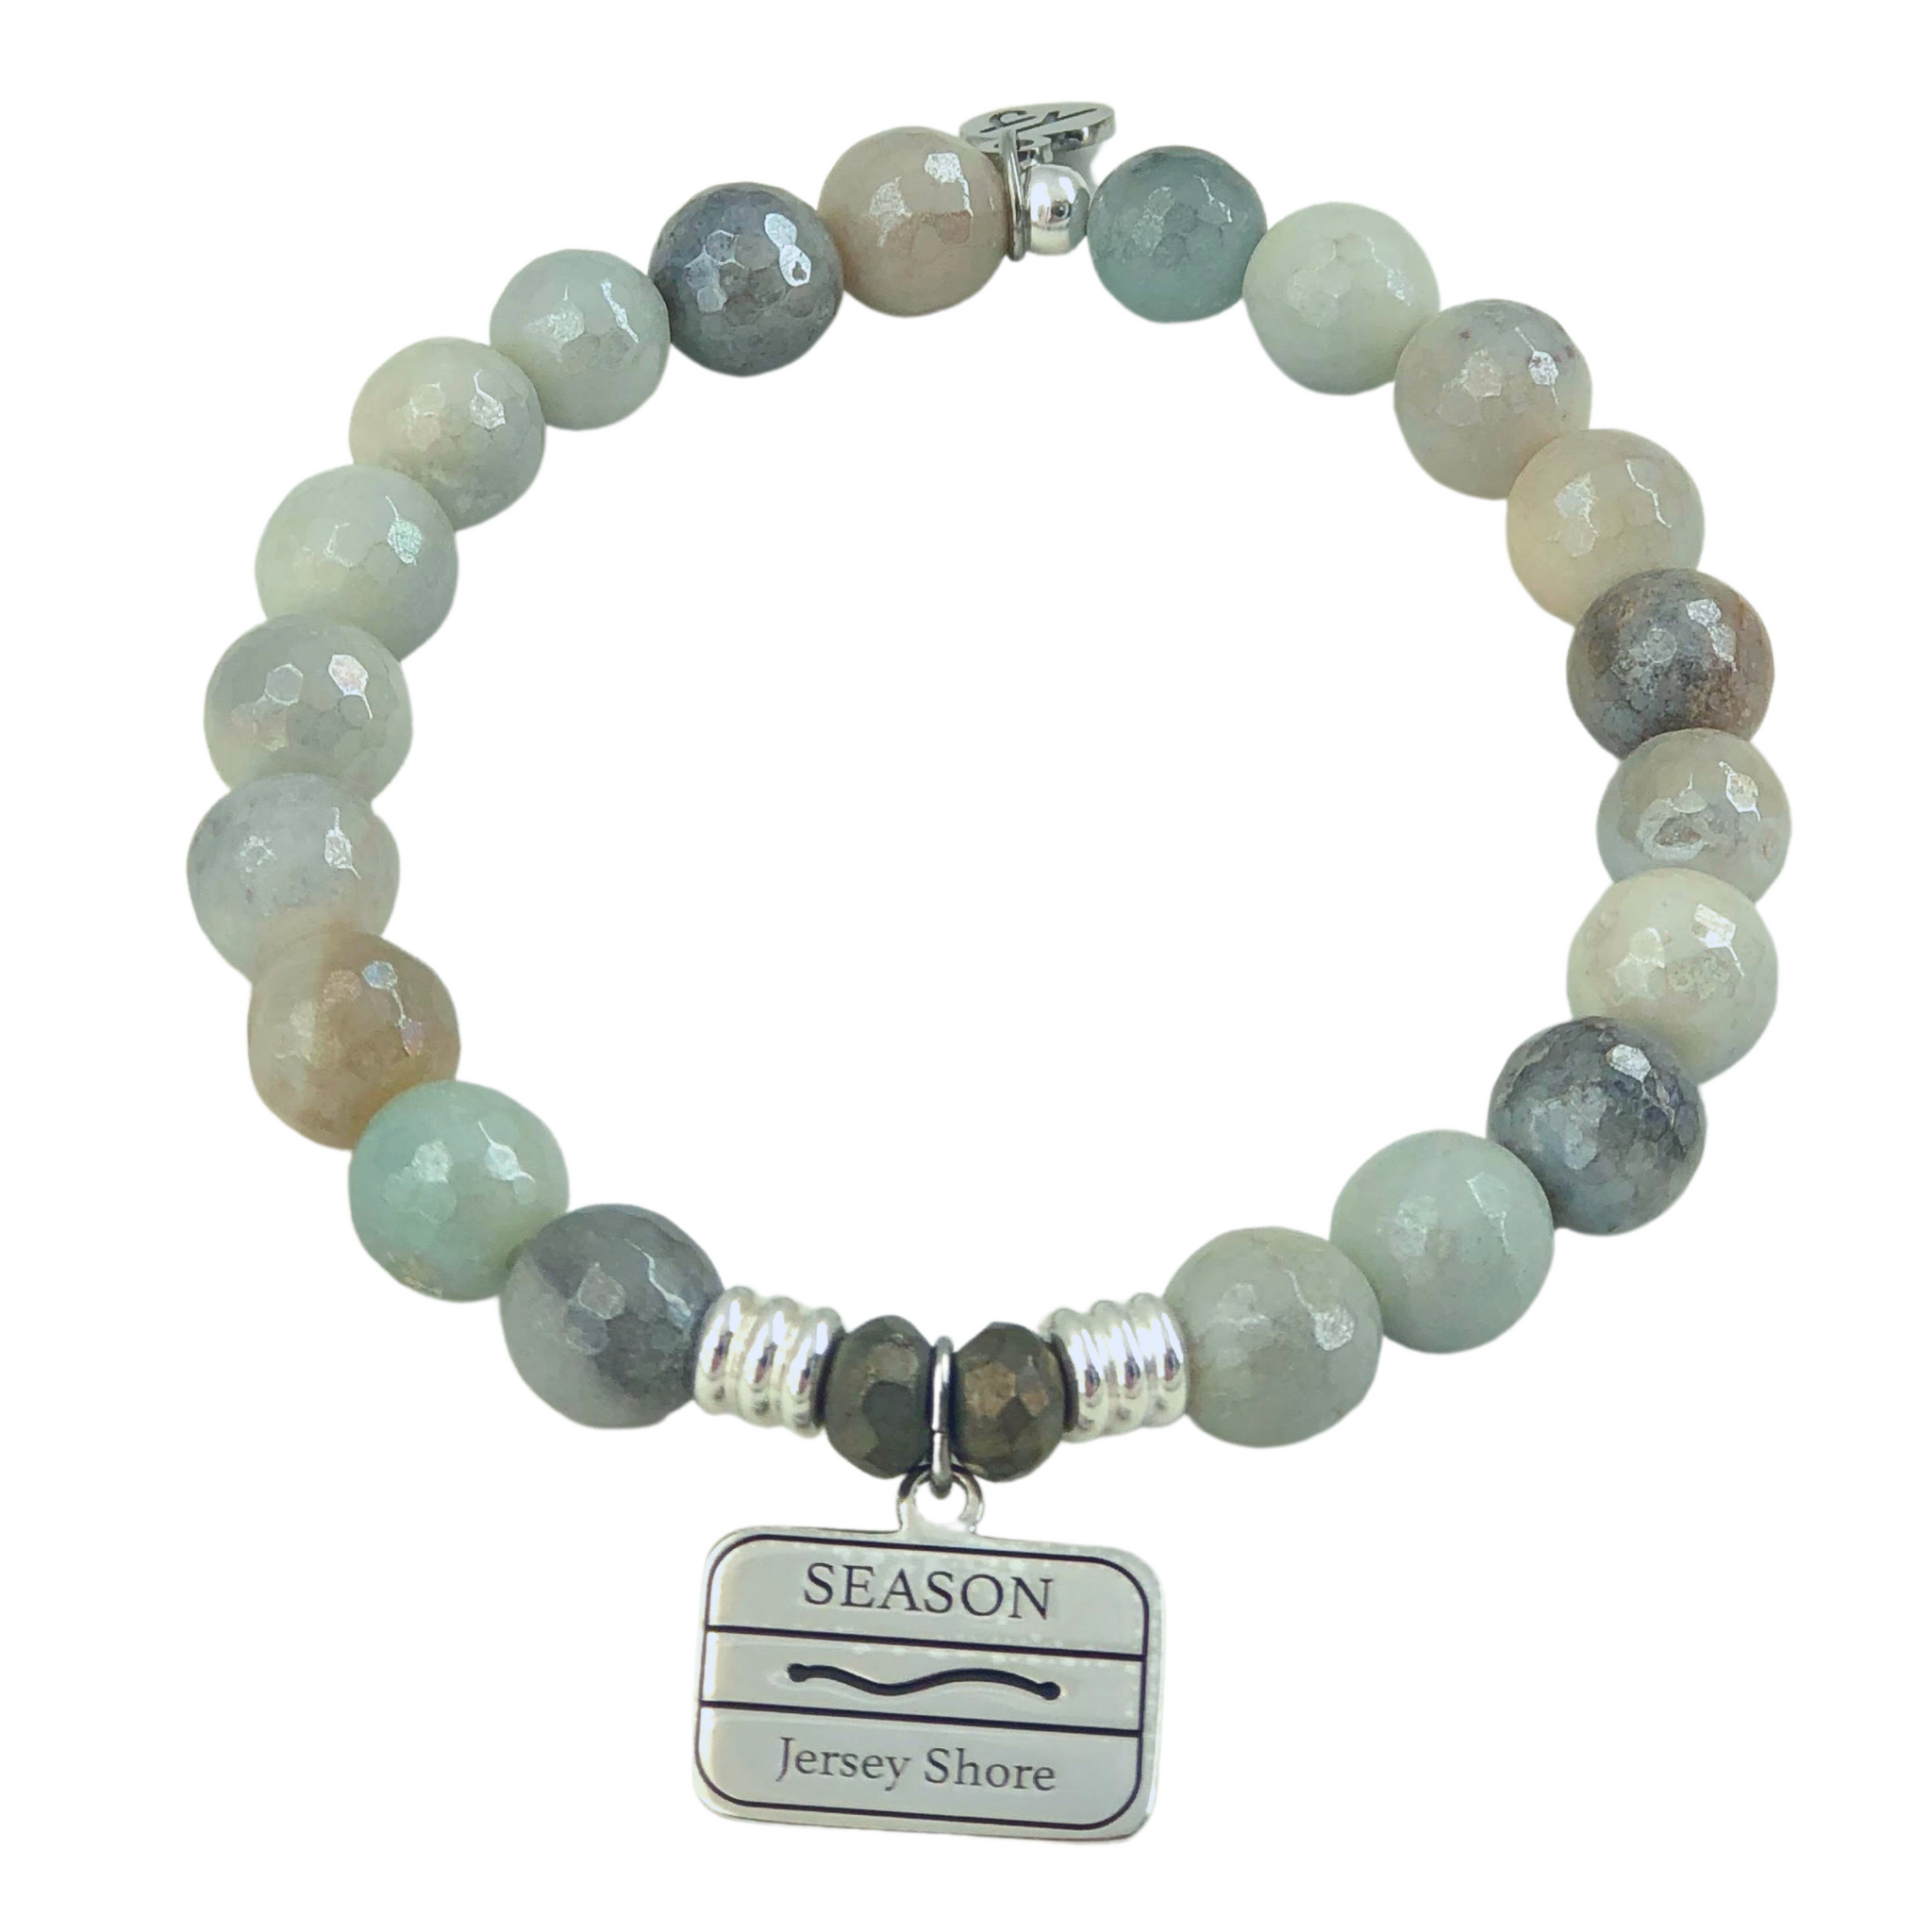 Jersey Shore Badge Amazonite Bracelet